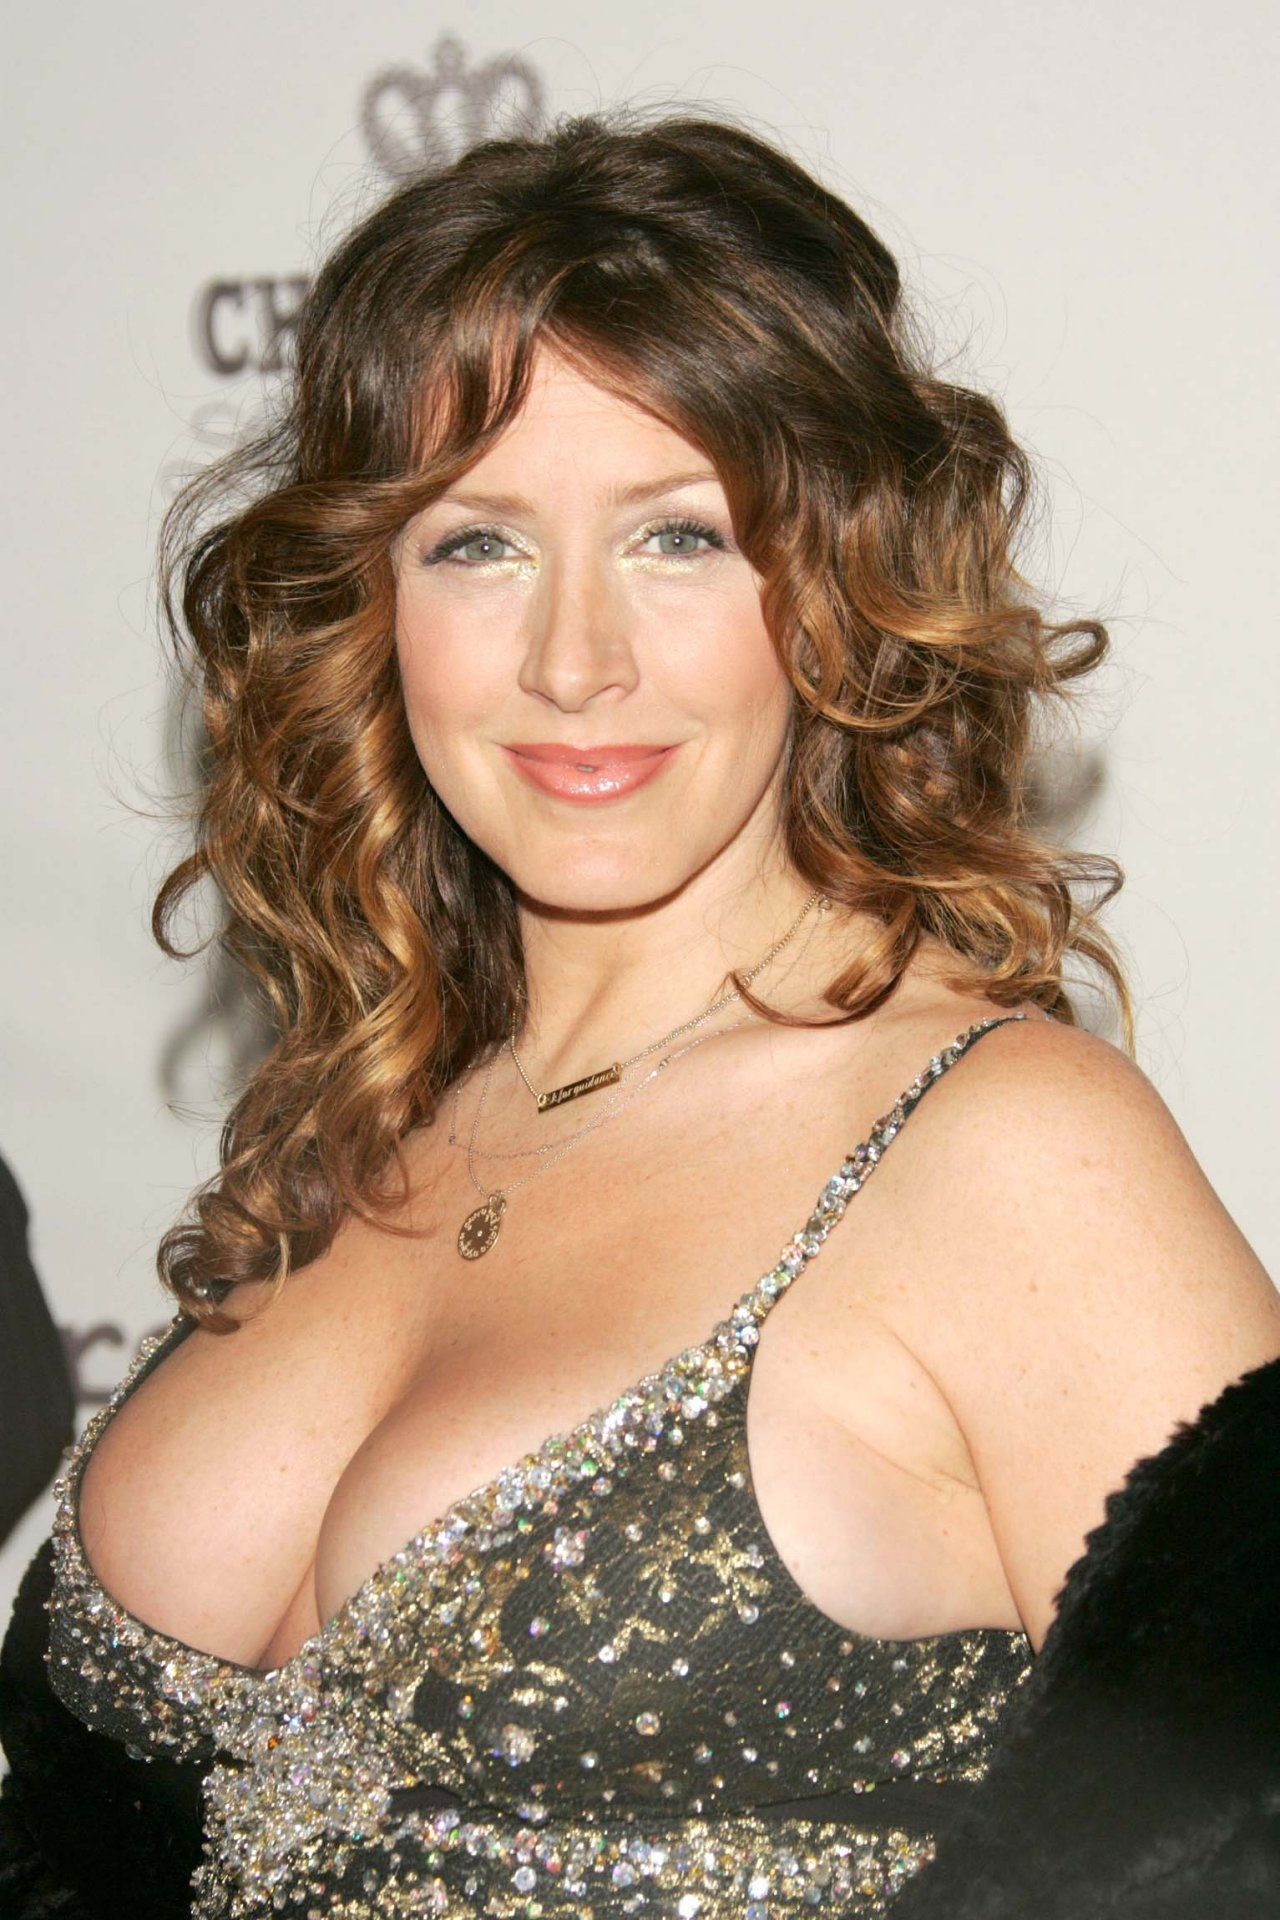 Loely fisher milf